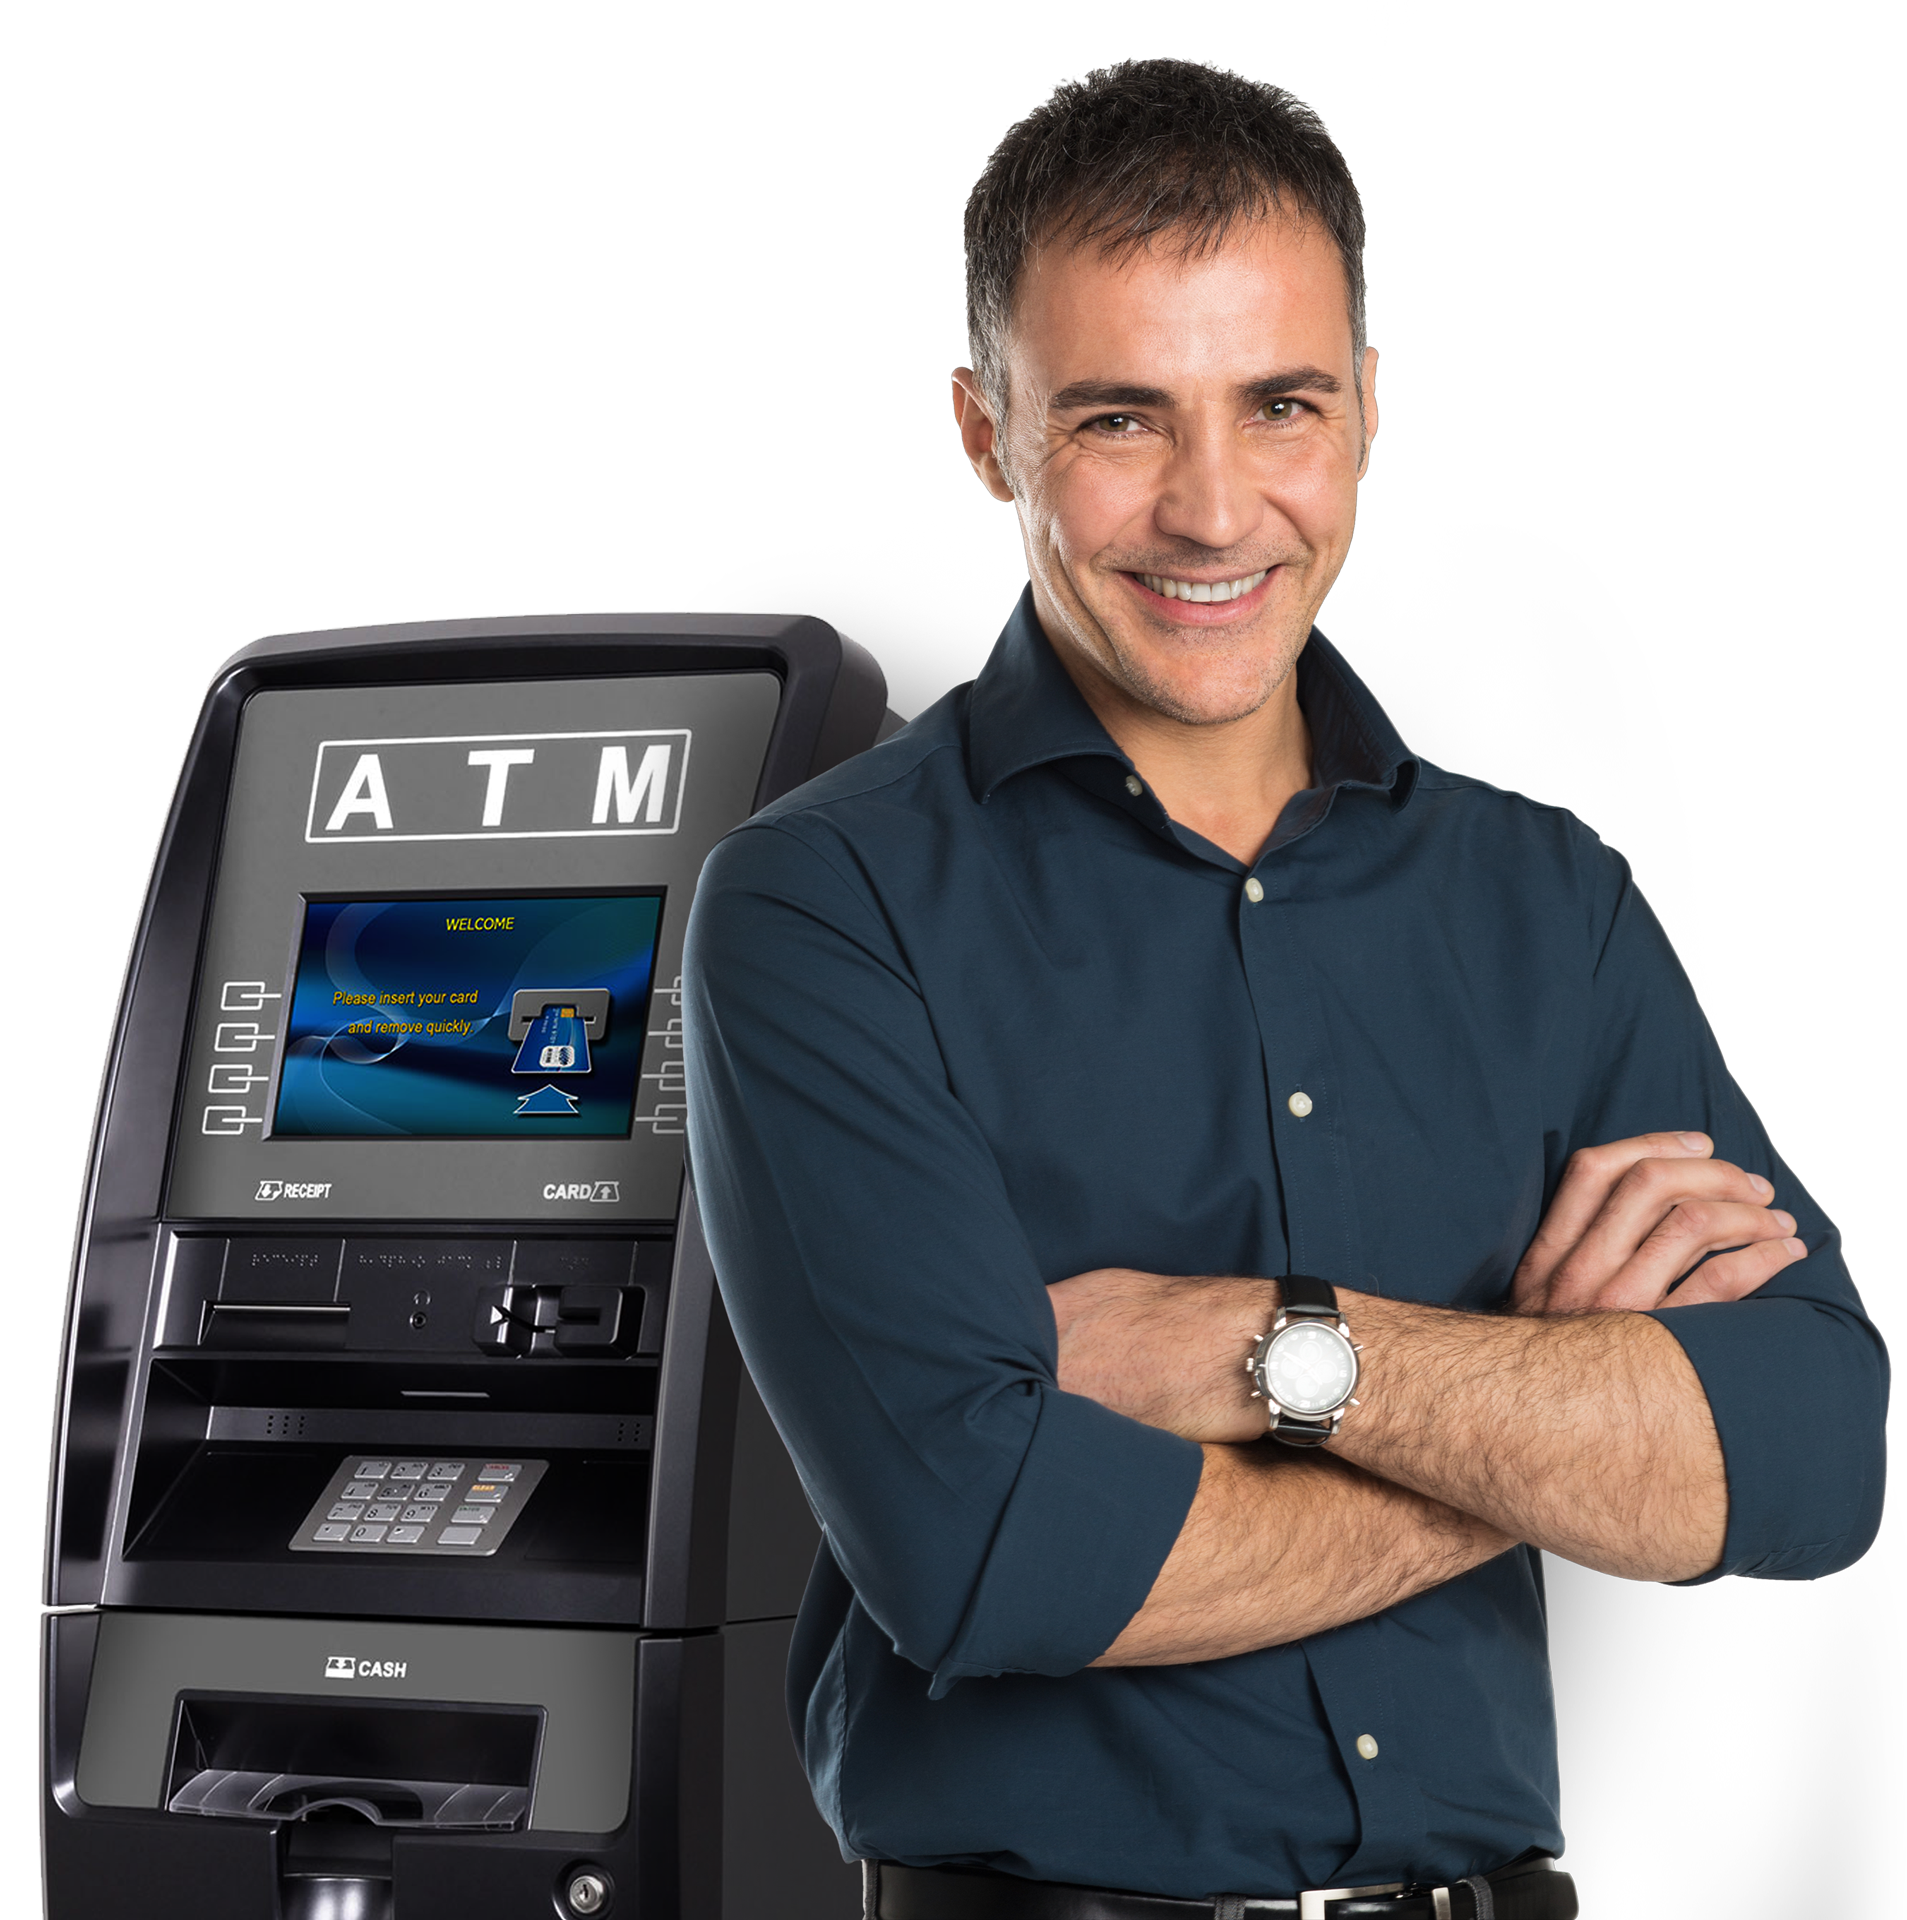 eGlobal ATM Market Partner with ATM Terminal